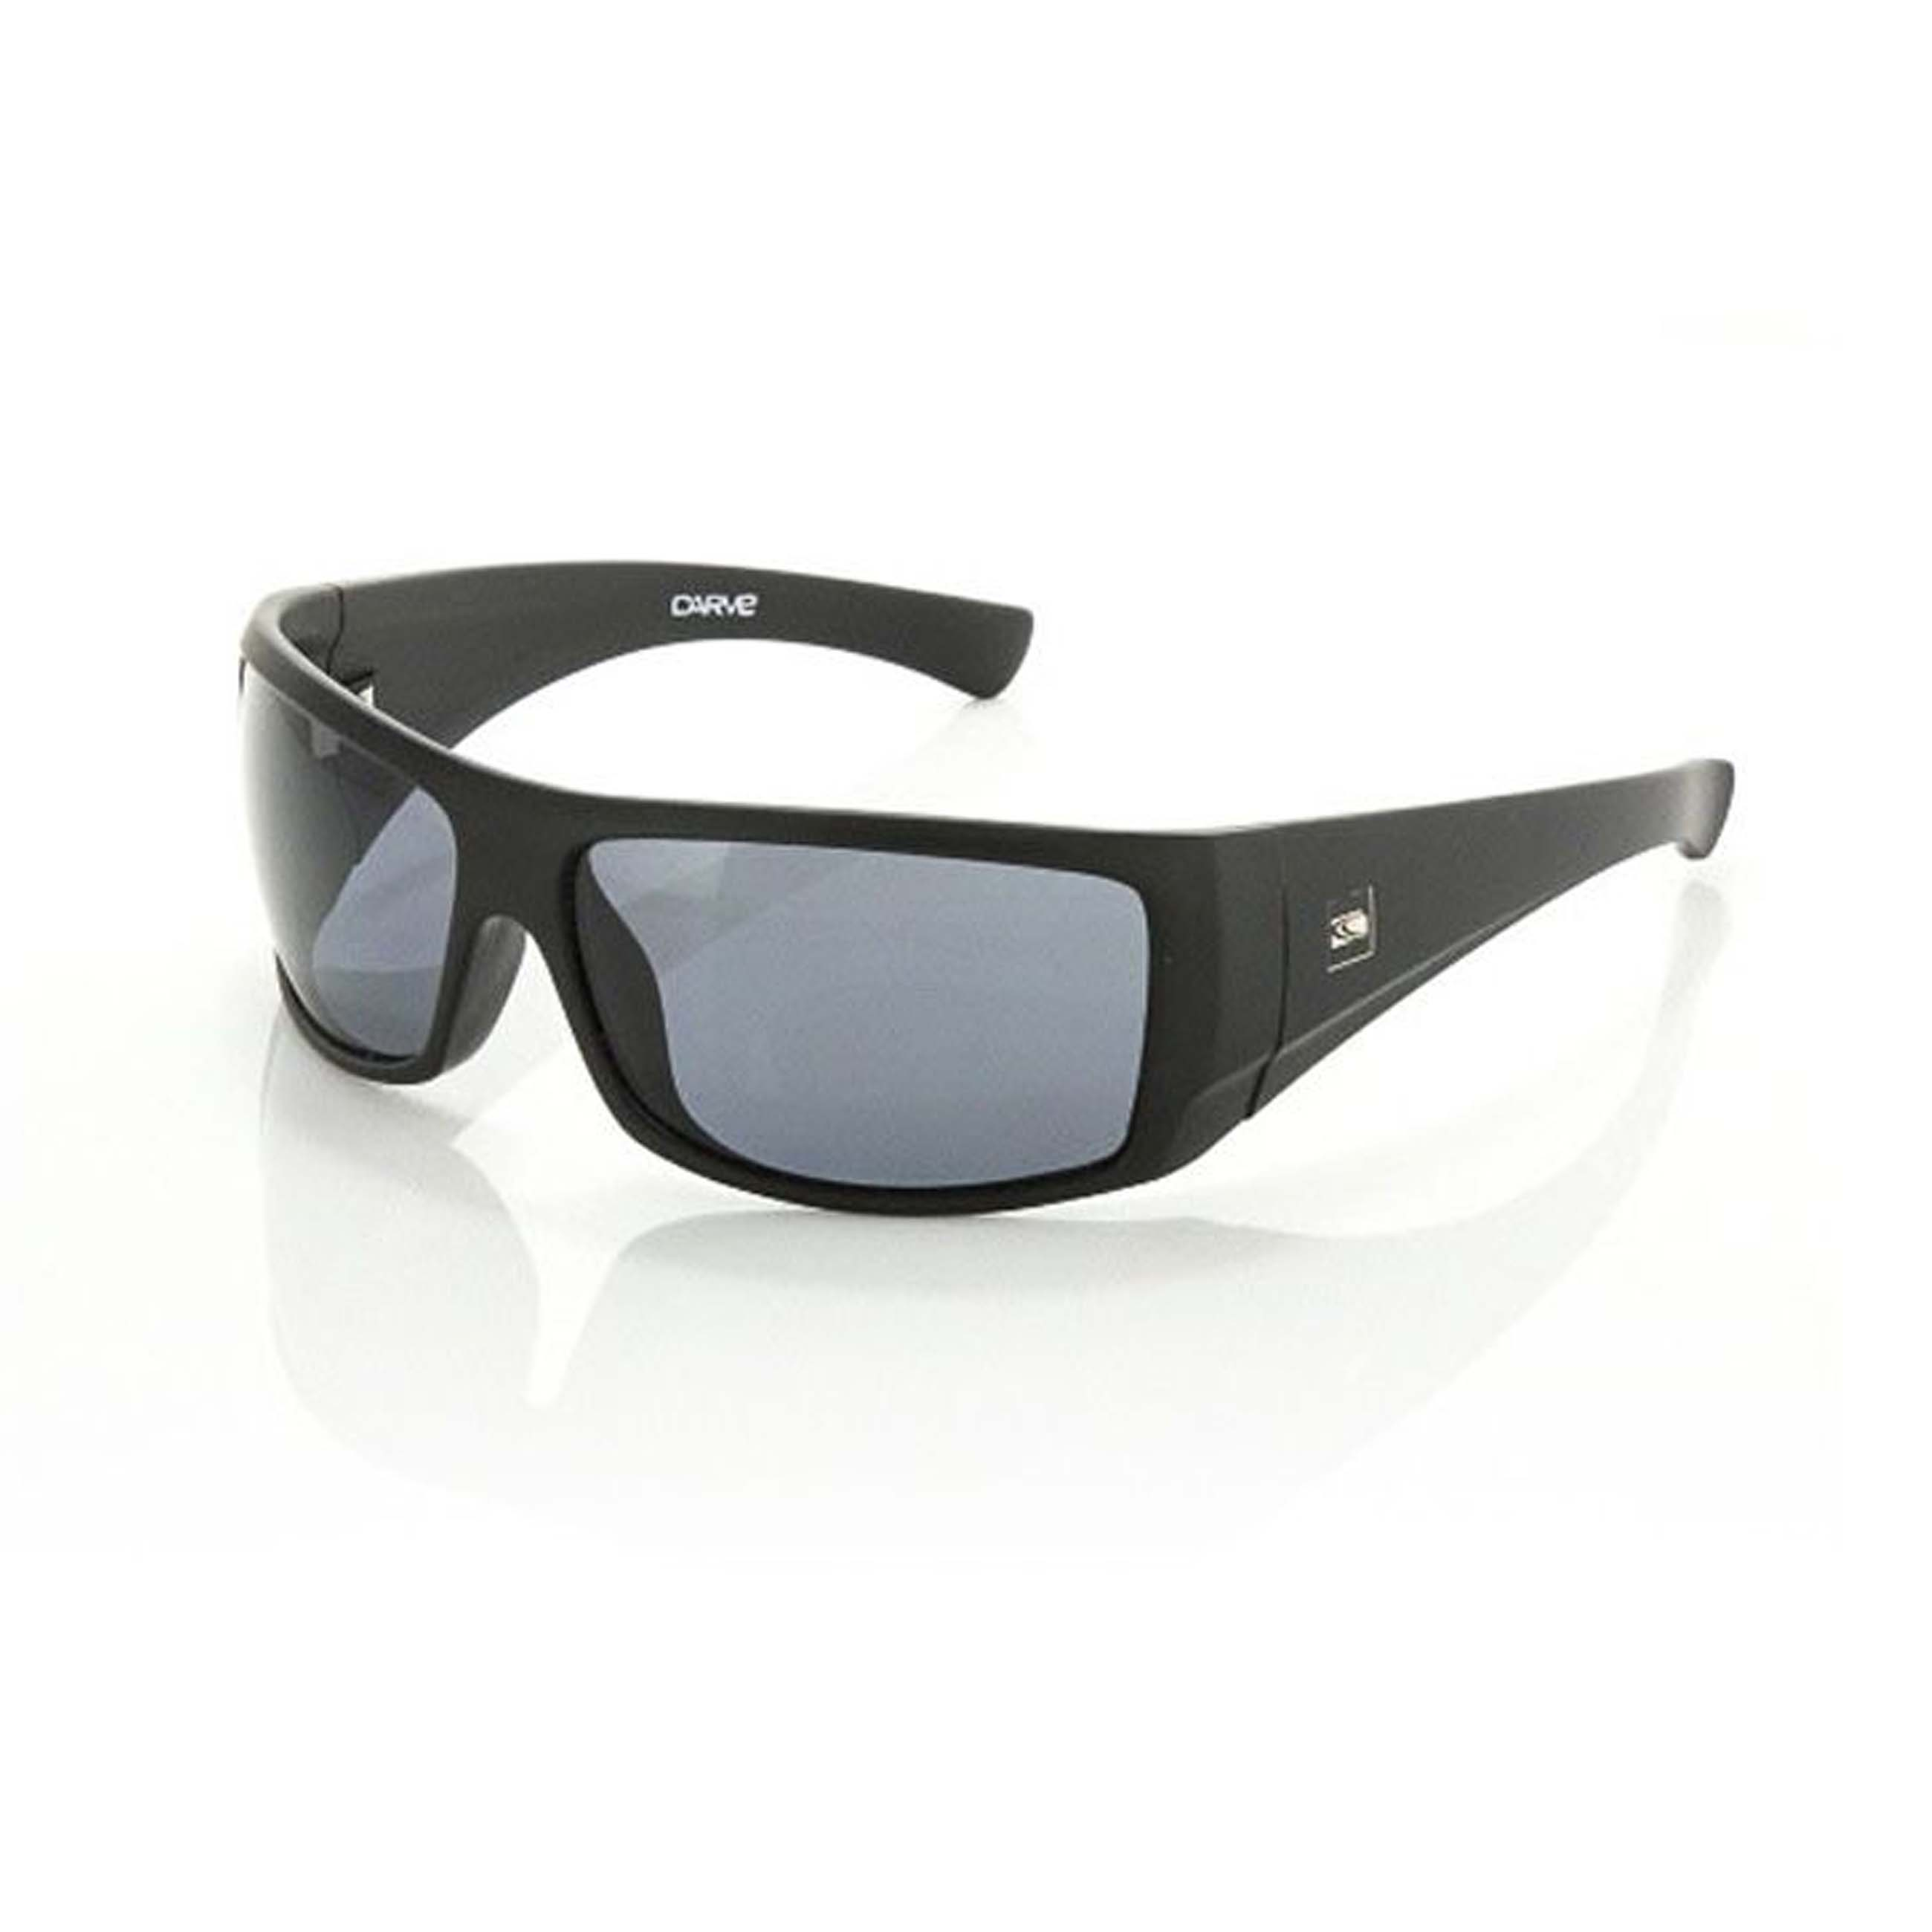 5e94605badccb Details about Carve Wolfpak Polarized Black Signature Lens Sunglasses